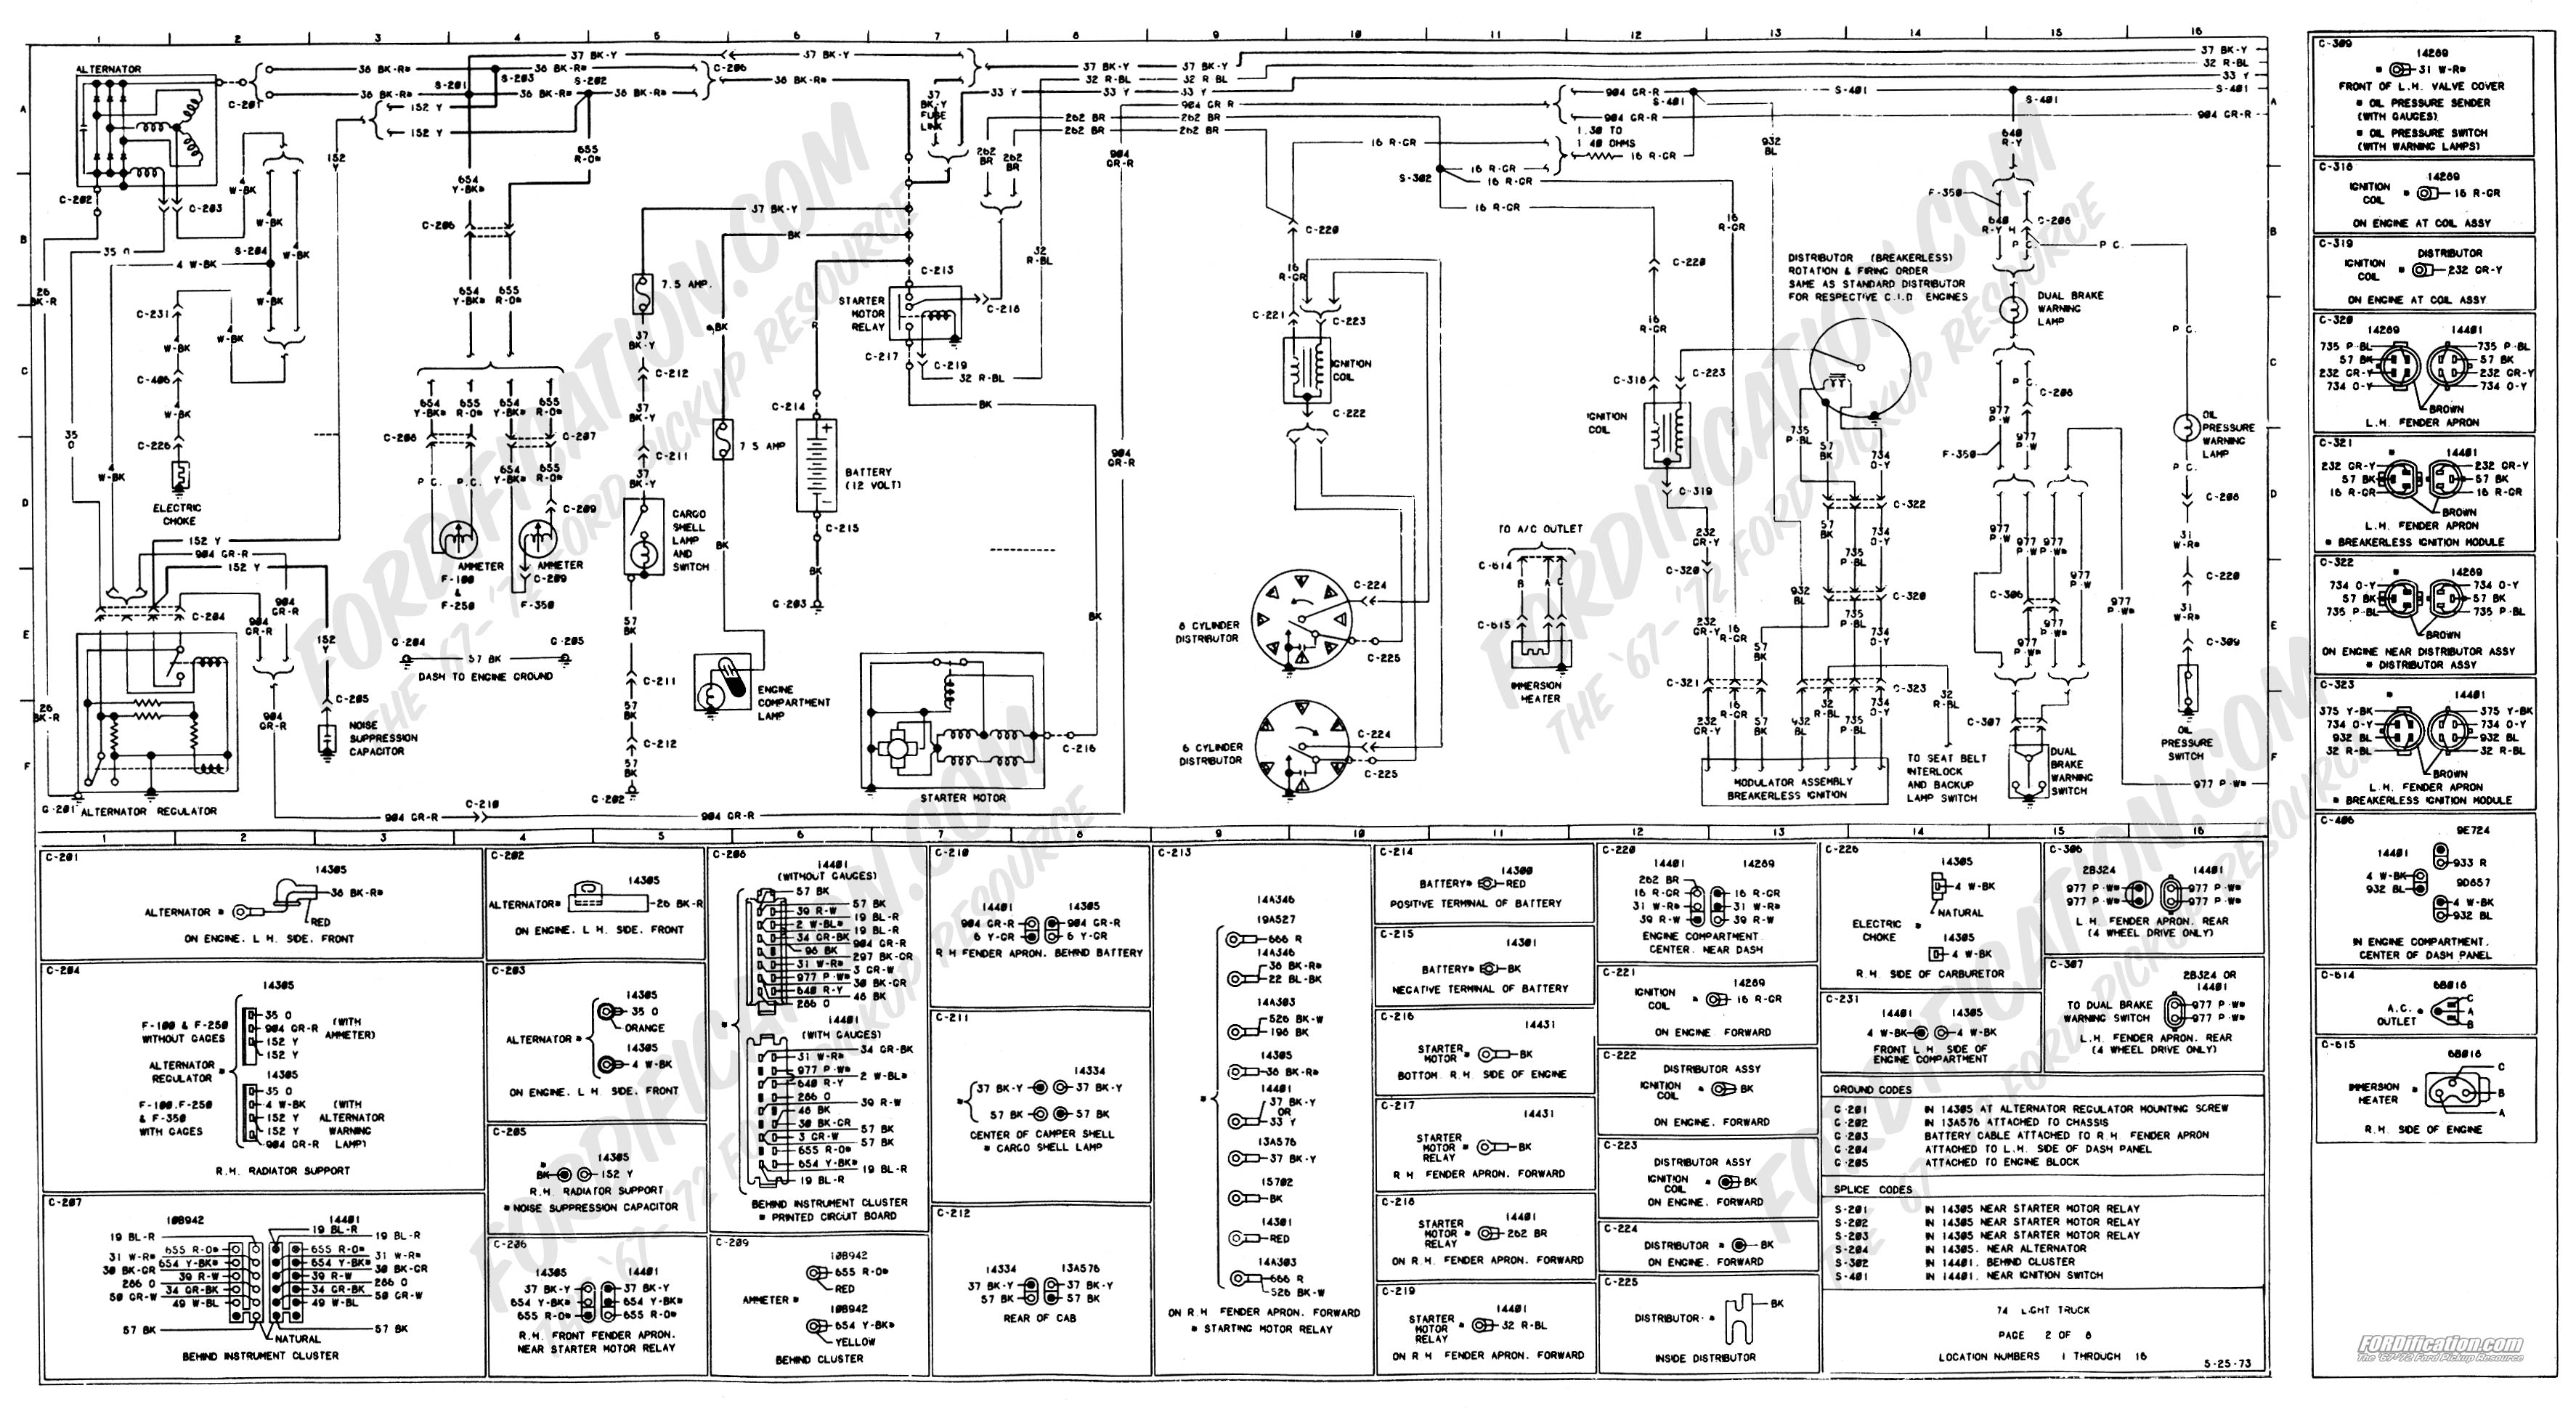 In Addition Fuse Box Wiring Diagram On F100 1970 Ford Panel 2006 650 Easy Diagrams U2022 Rh Art Isere Com